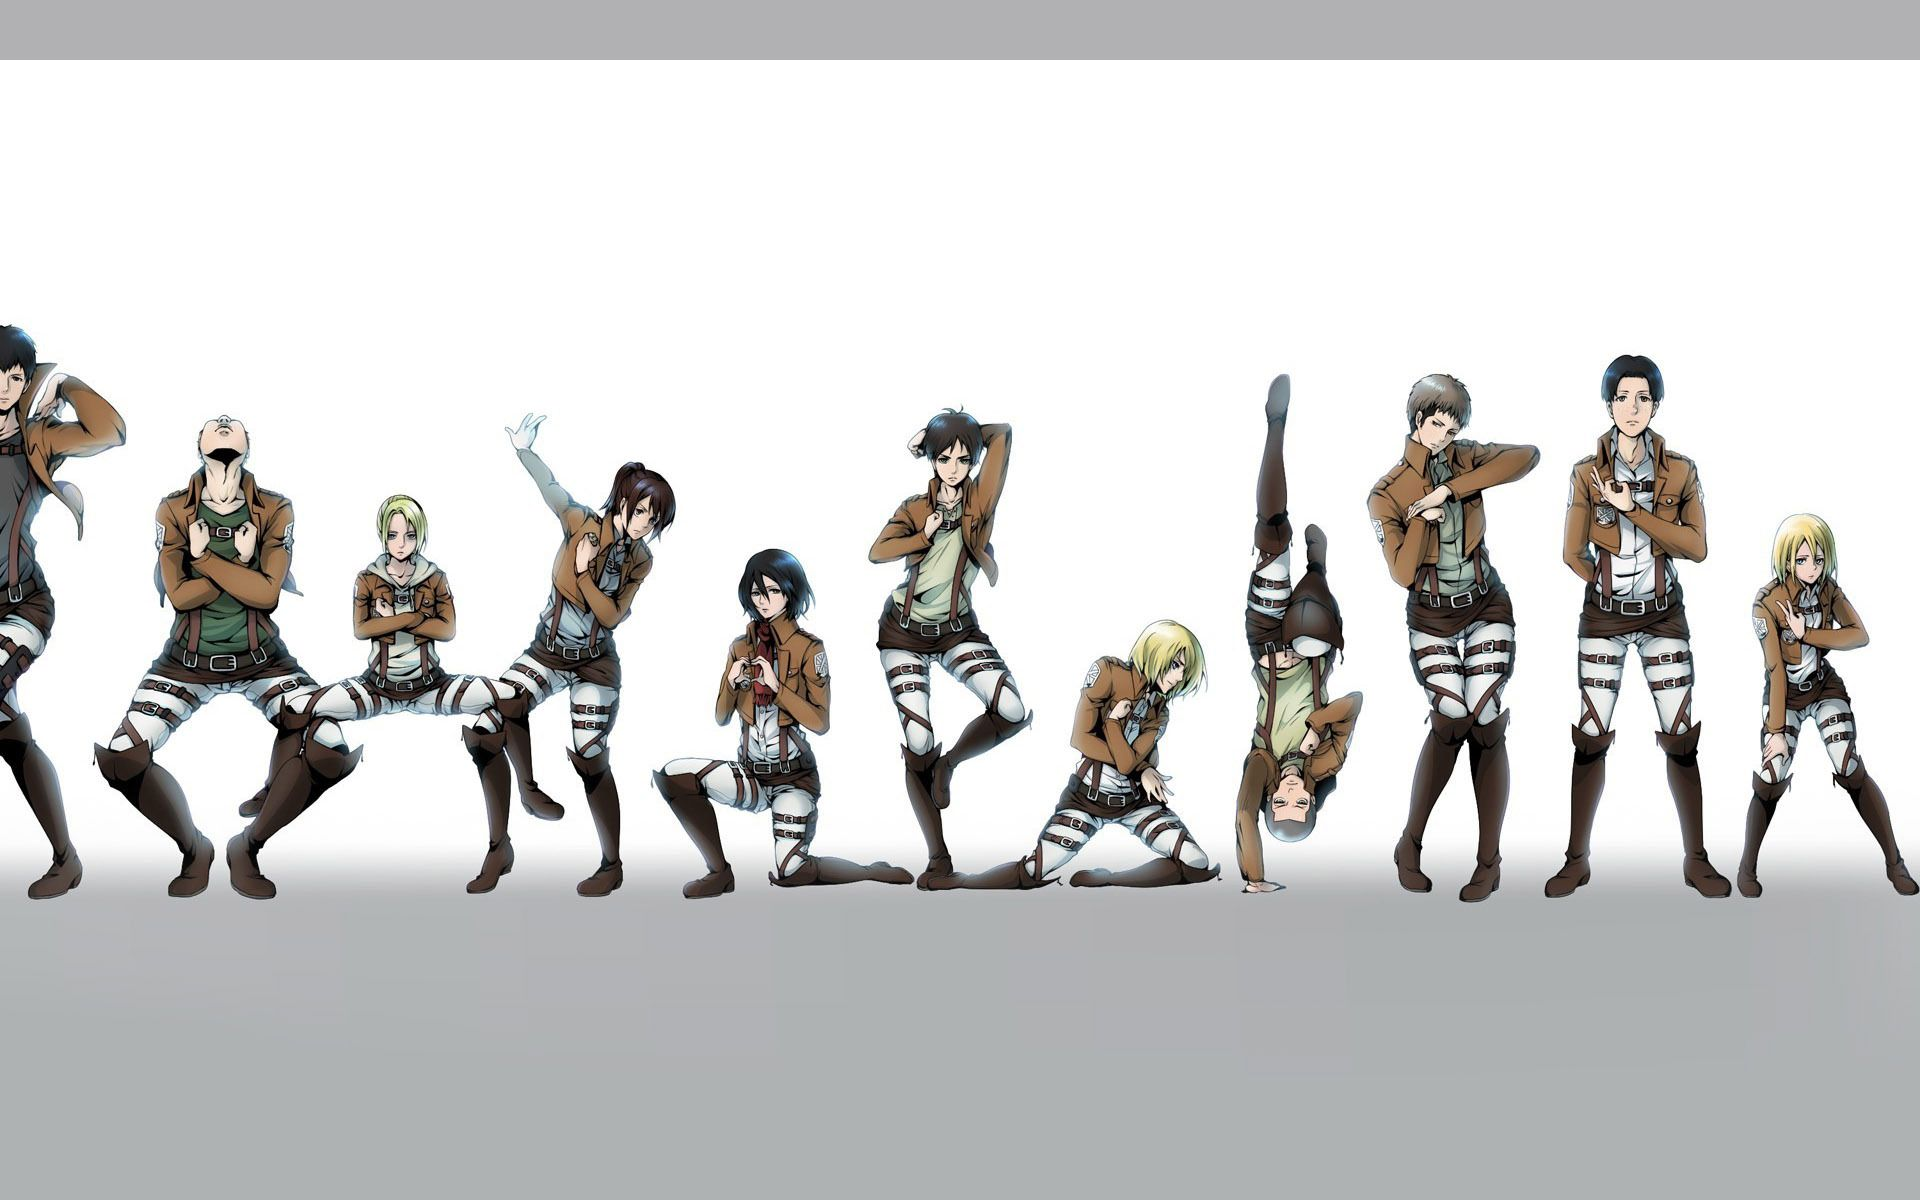 Download attack on titan tribute game for windows & read reviews. Image for Attack On Titan Wallpaper 1920X1080 | Stuff to ...